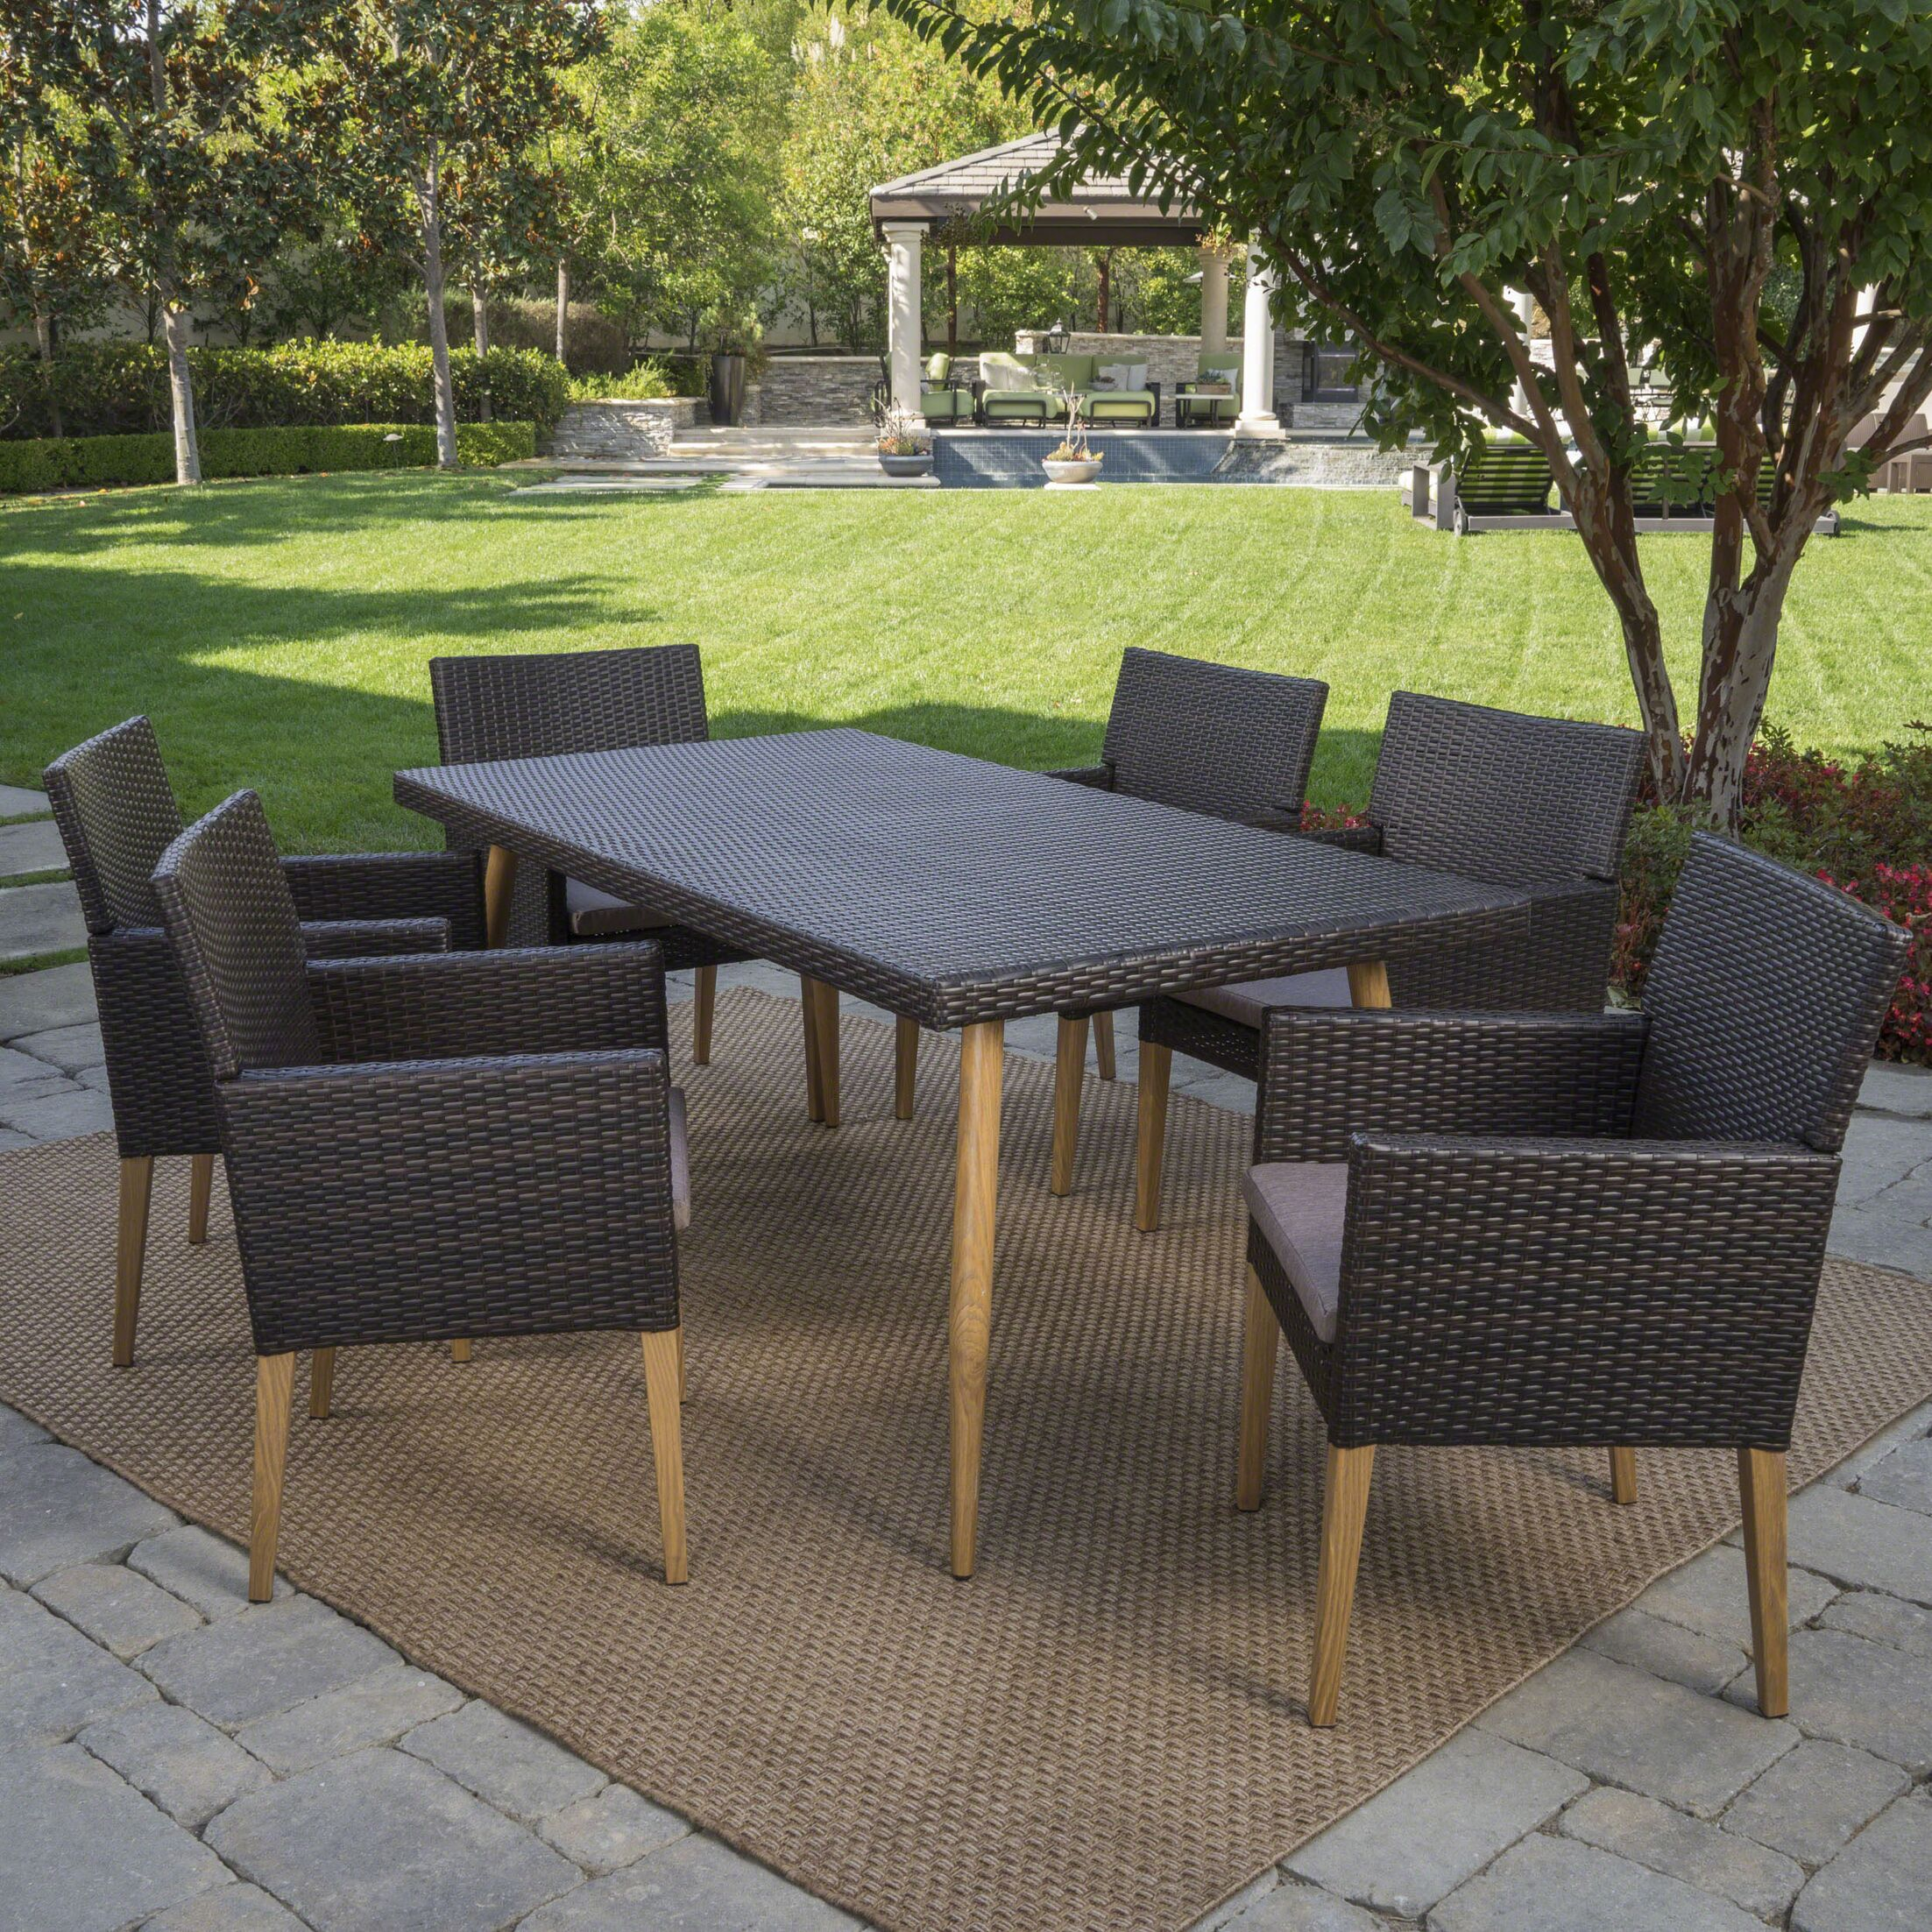 Sobel Outdoor 7 Piece Dining Set with Cushions